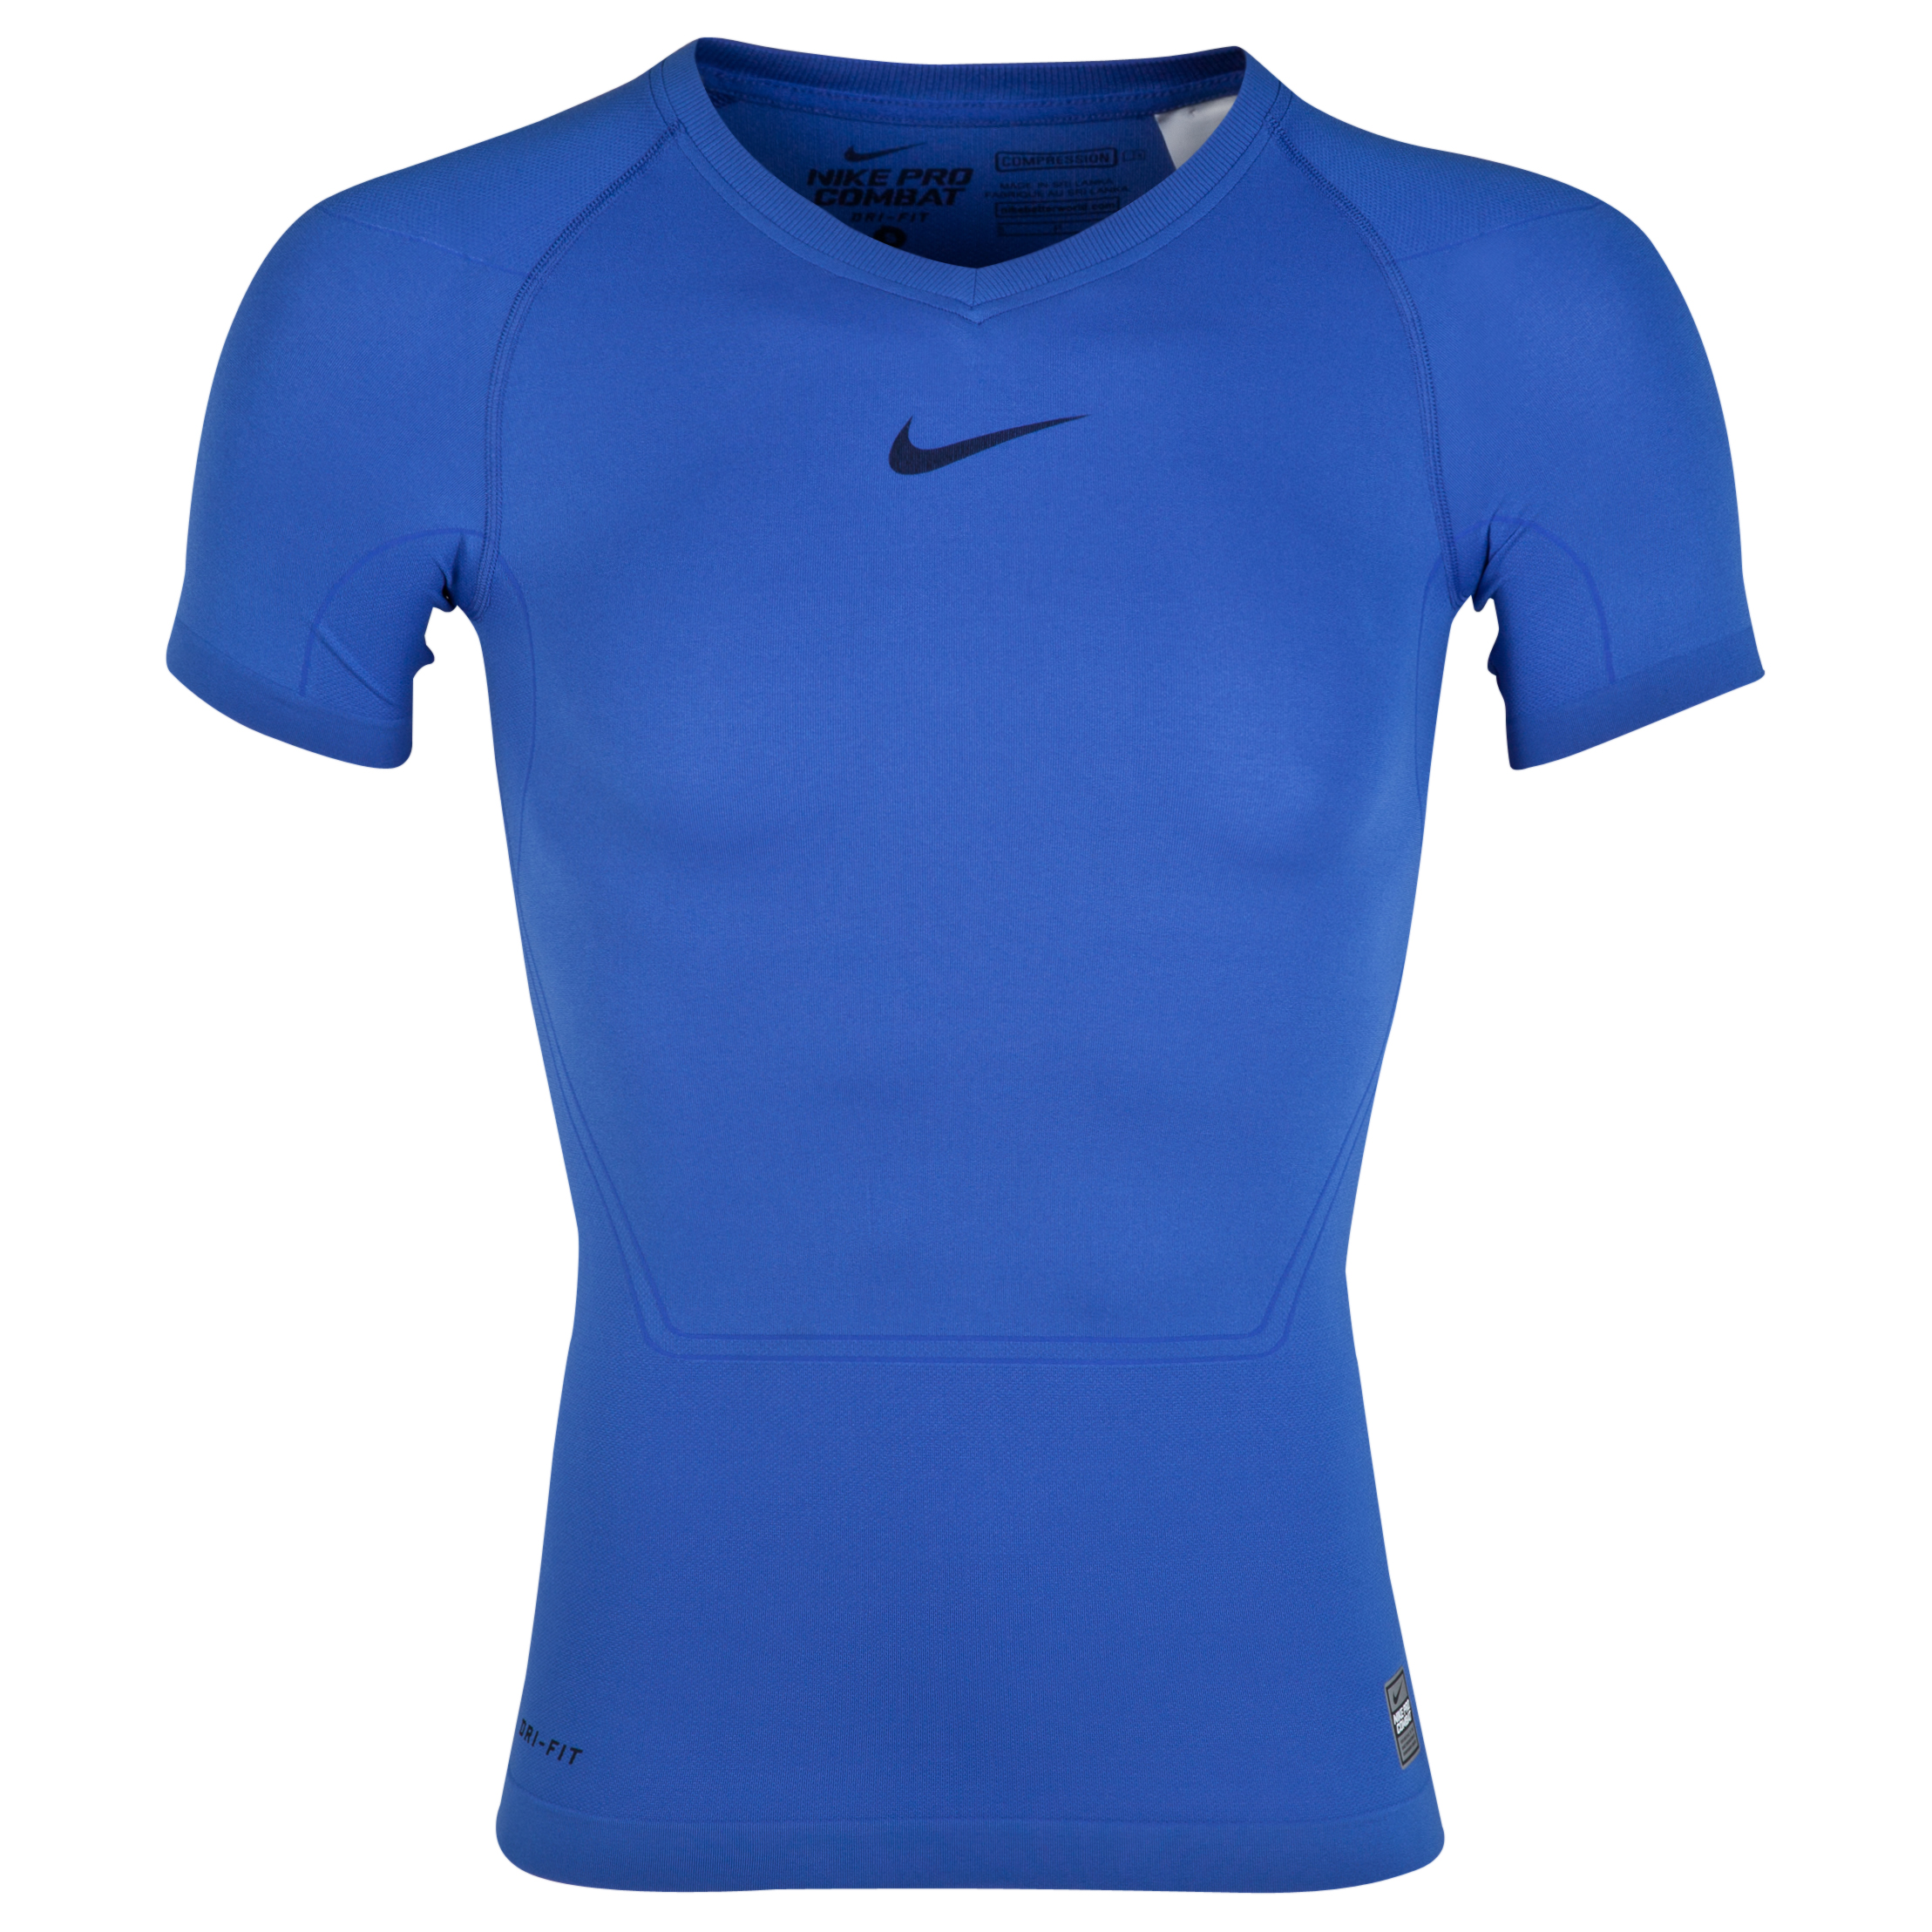 Nike Pro Combat Lightweight Seamless Base Layer Top Blue